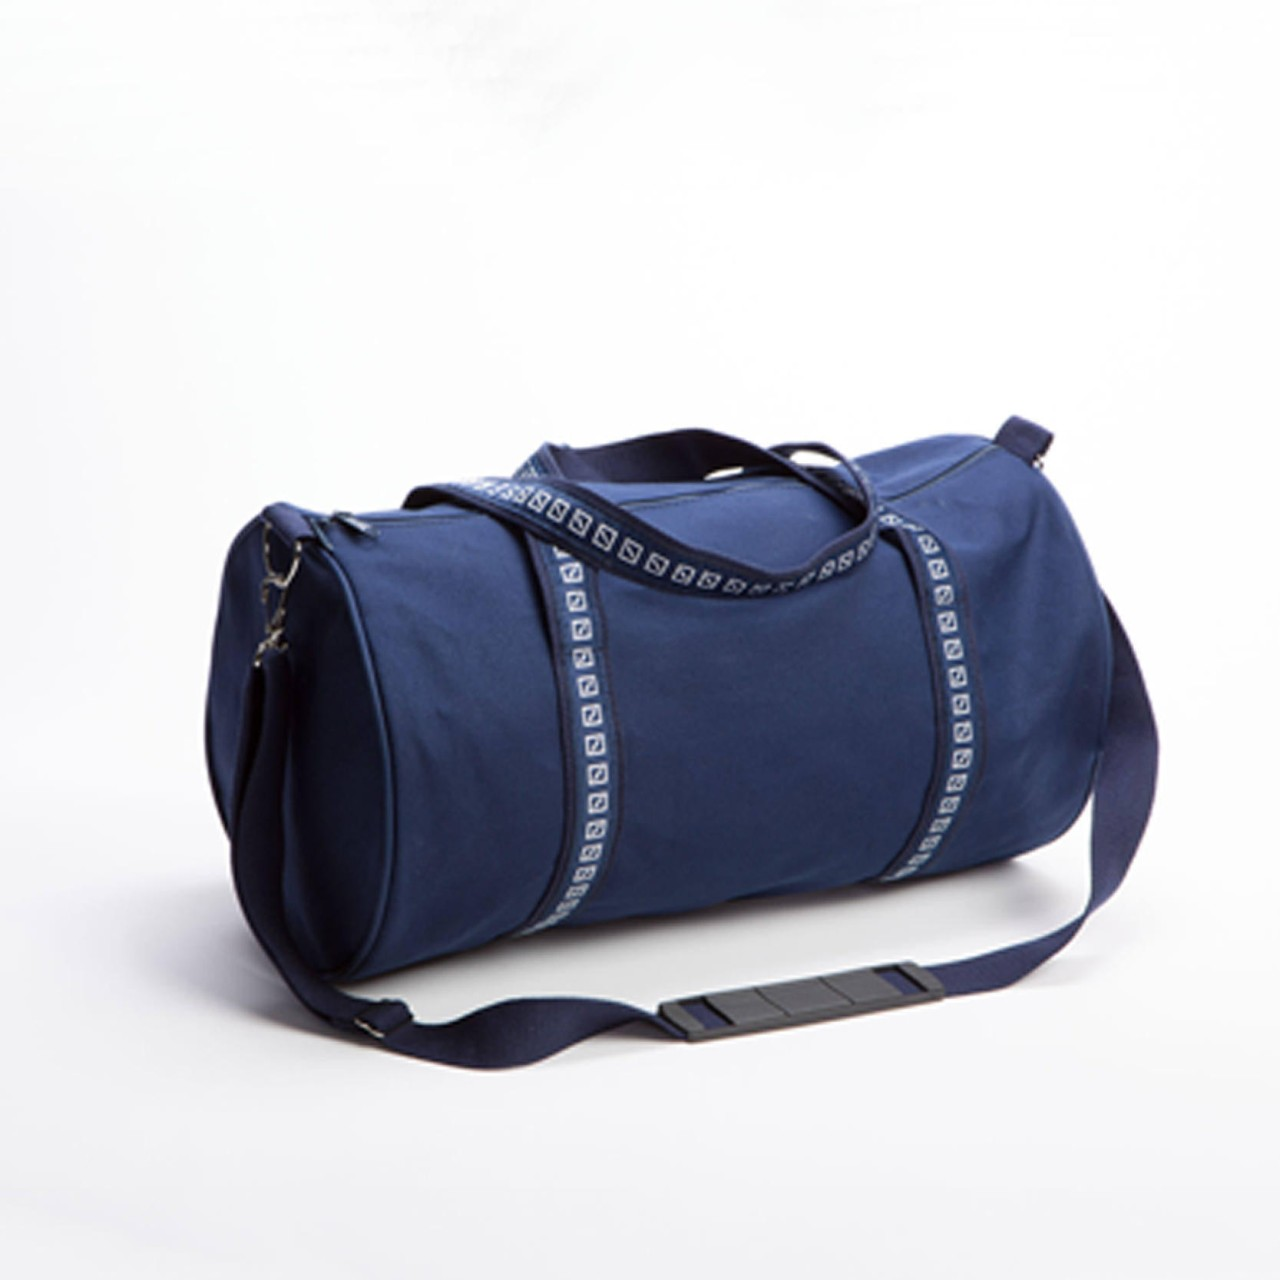 860e34e6dacf How the bank industry's gym bag came to be seen as a 'badge of ...